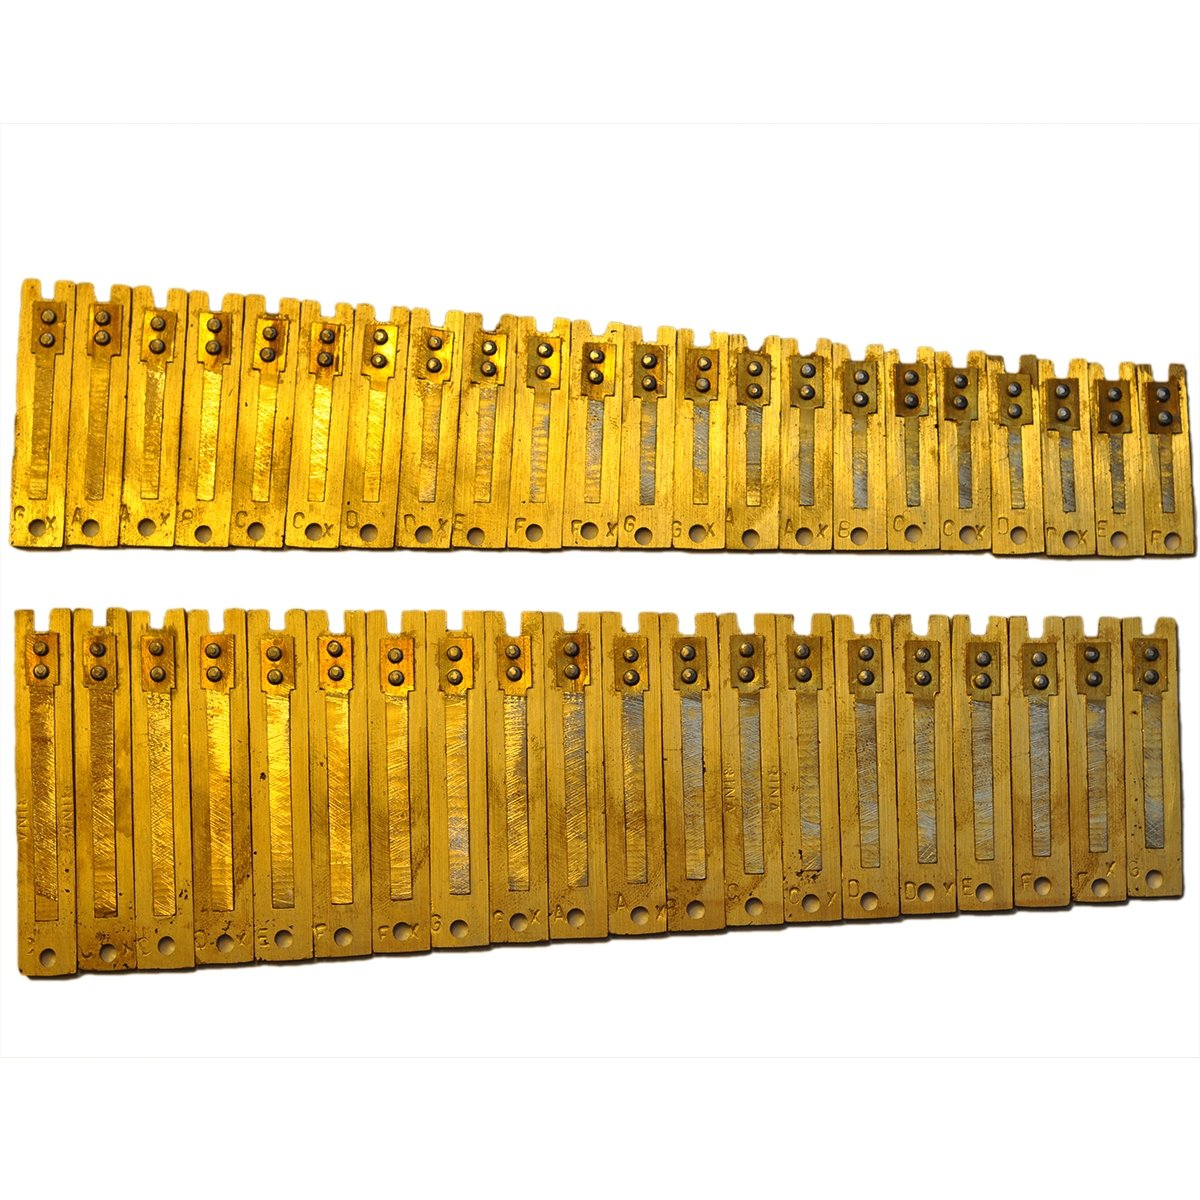 Harmonium Reeds - 3.5 Octave Male Set for Delhi harmoniums